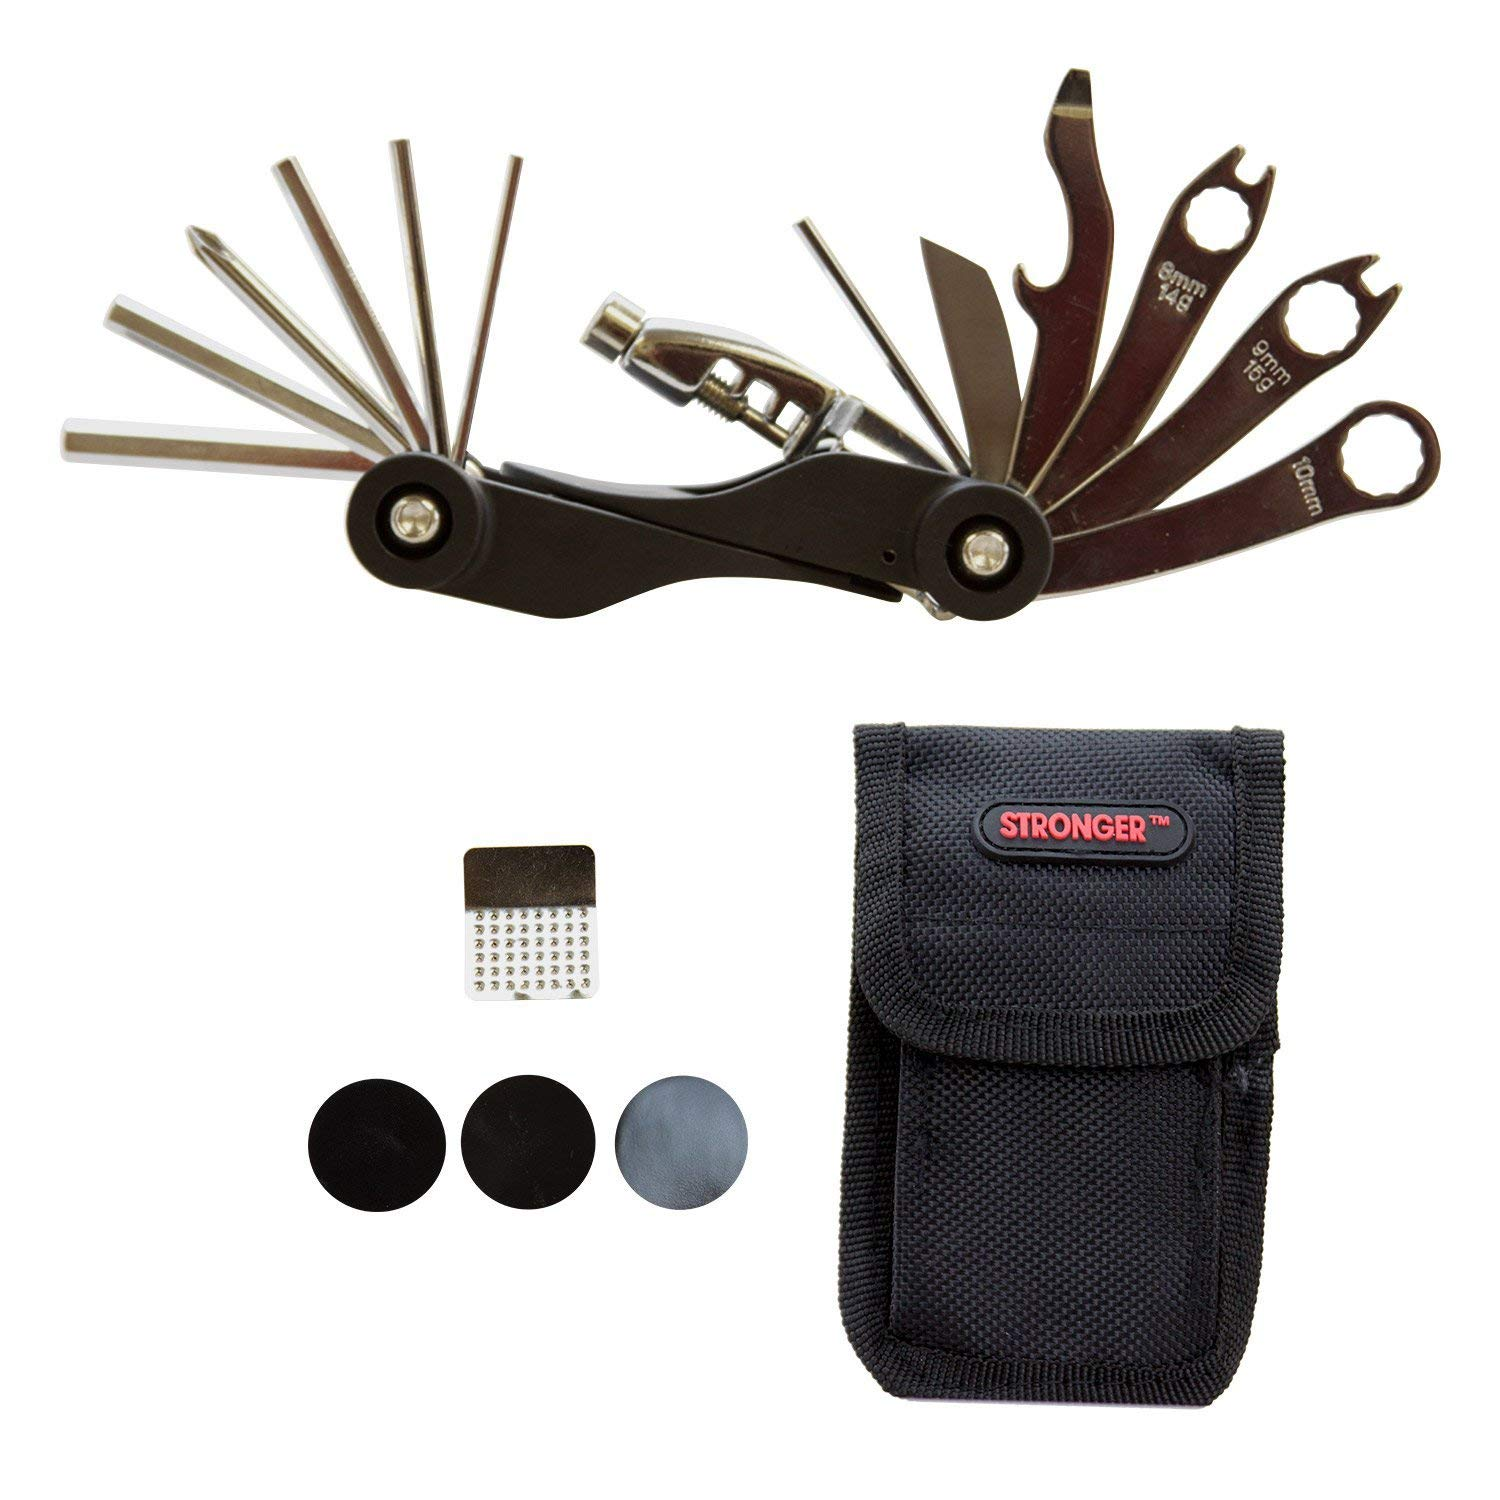 LB1 High Performance Bike Bicycle Multi-Tools (20 Functions) Repair Kit with Tire Patch, Tire Lever, Durable Nylon Bag Bicycle Cycling Maintenance Repair Tool Set - 12 Month Warranty